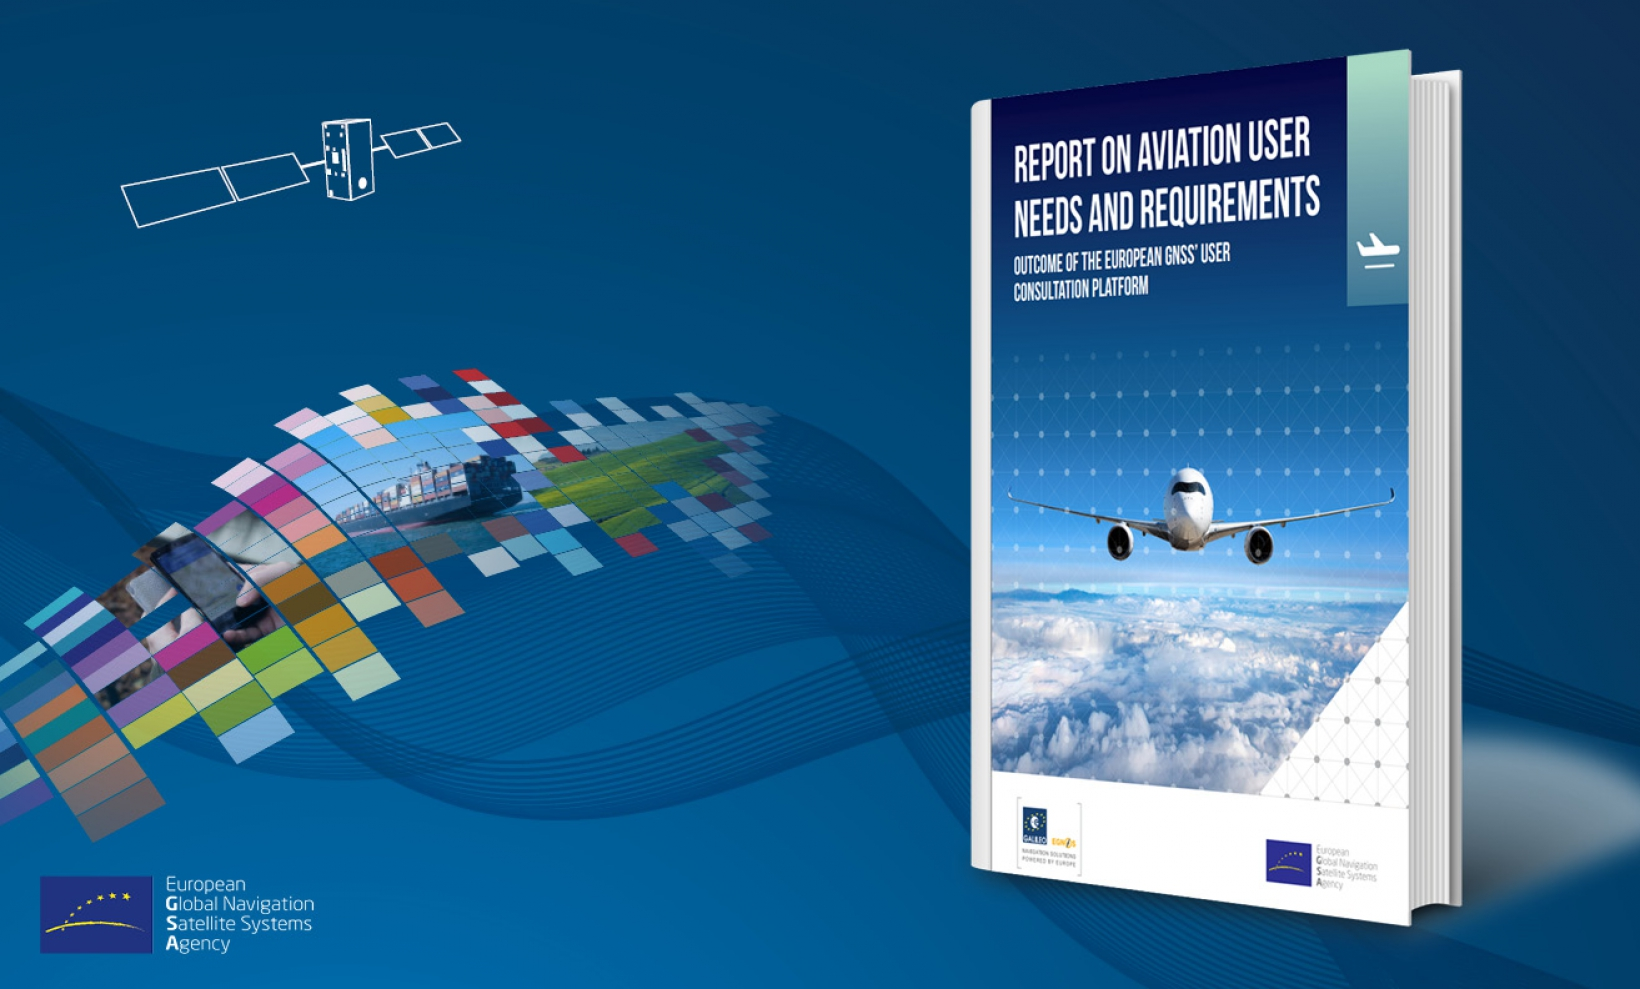 The Report provides a reference for the EGNSS Programmes and for the aviation community on user needs and requirements in the aviation market segment.